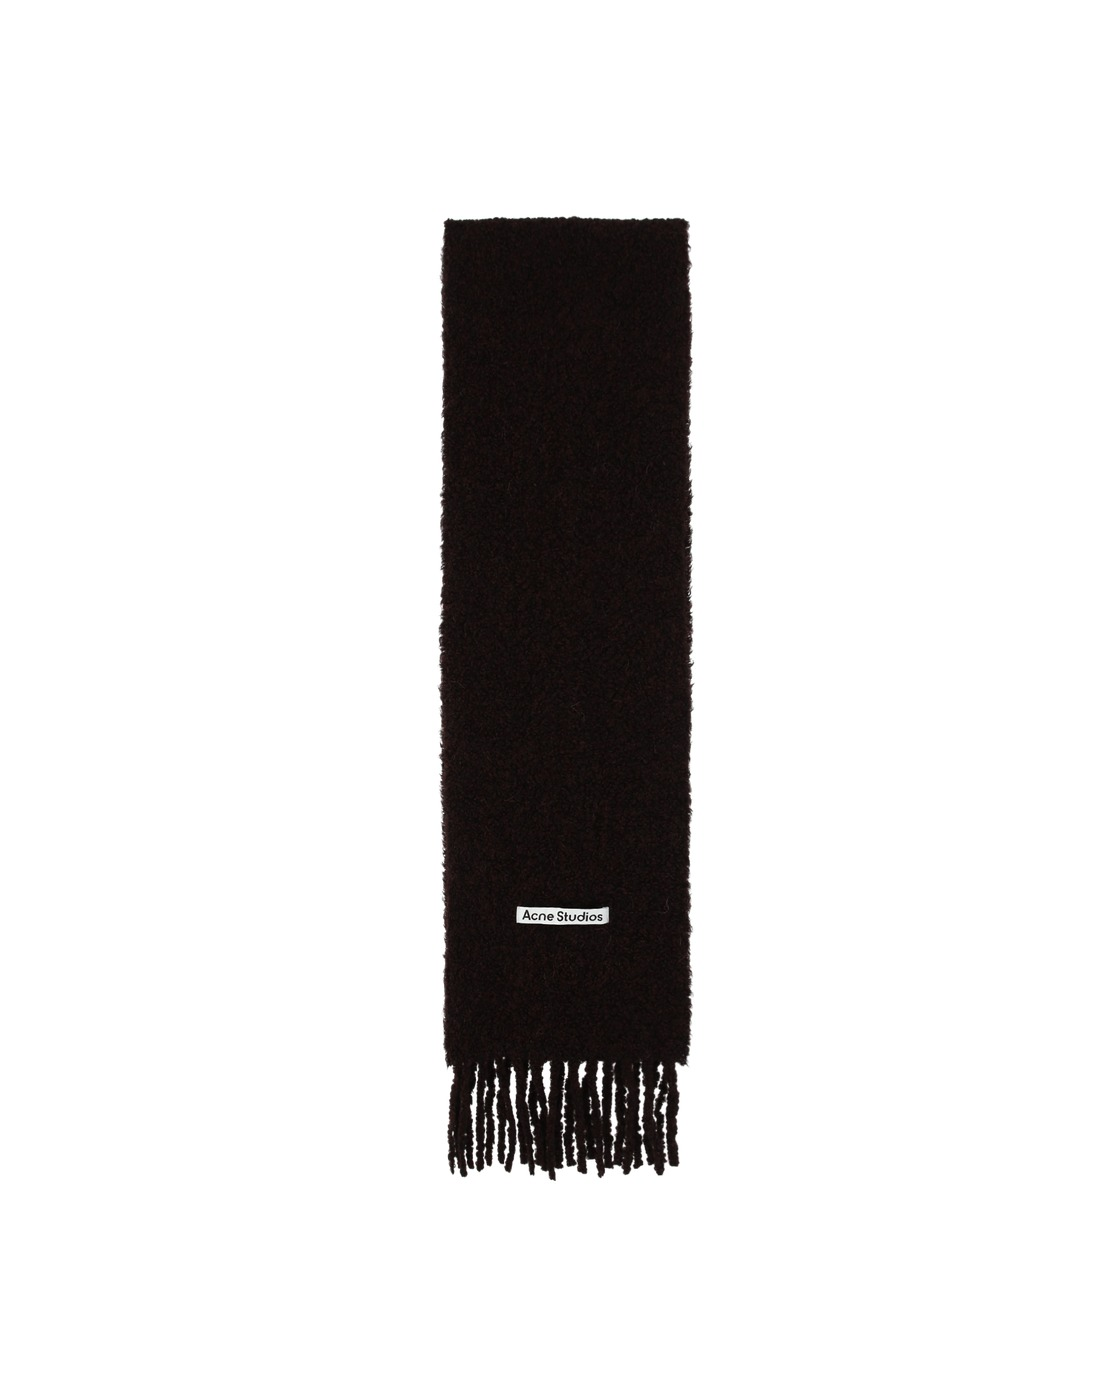 Photo: Acne Studios Large Boucle Scarf Chocolate Brown